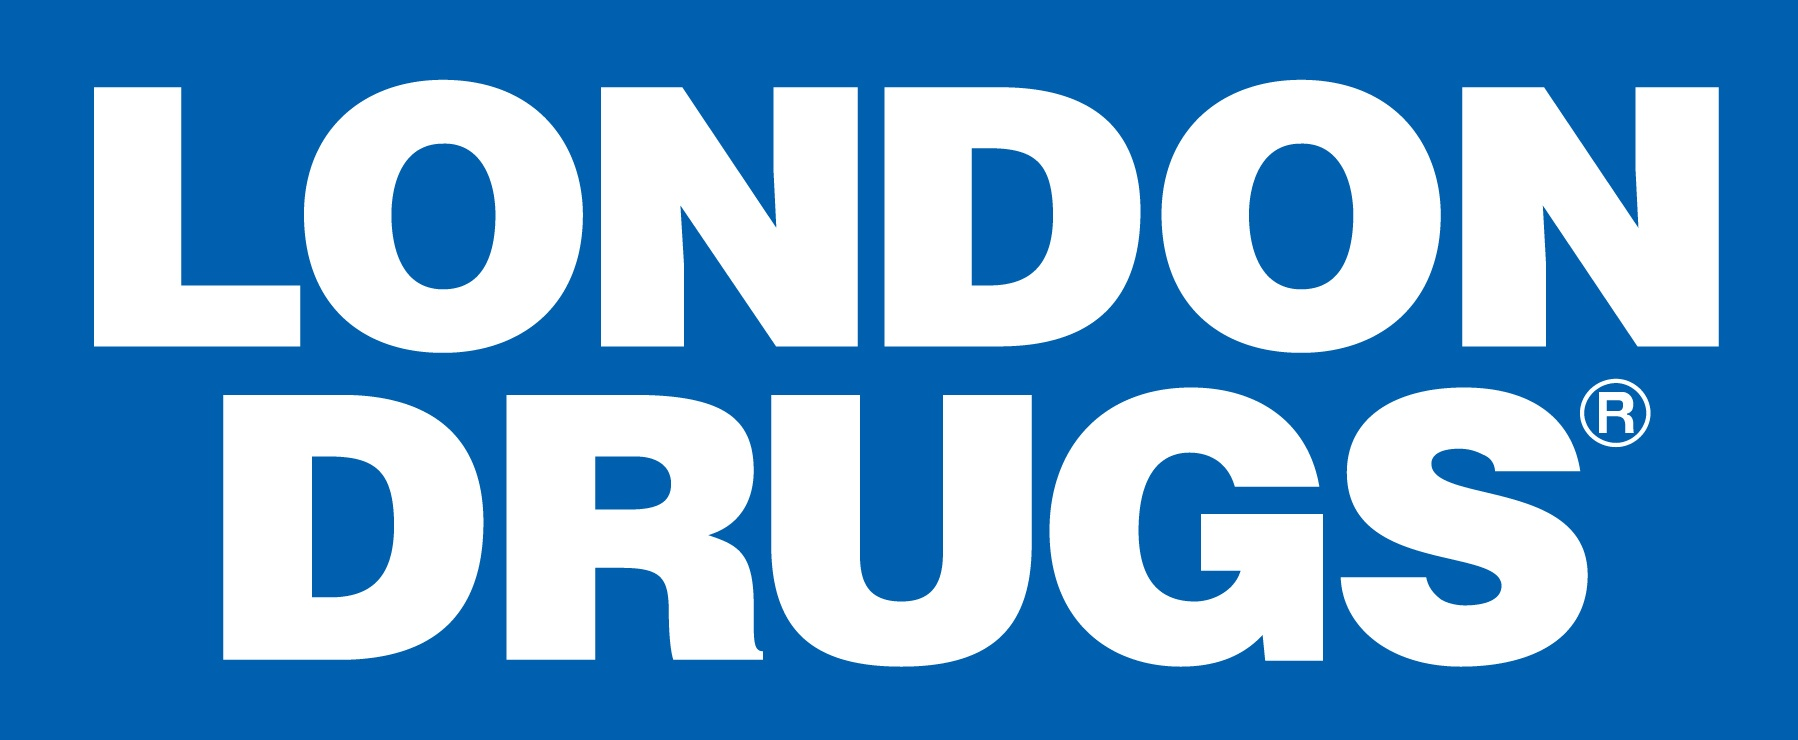 London Drugs Logo blue.jpg